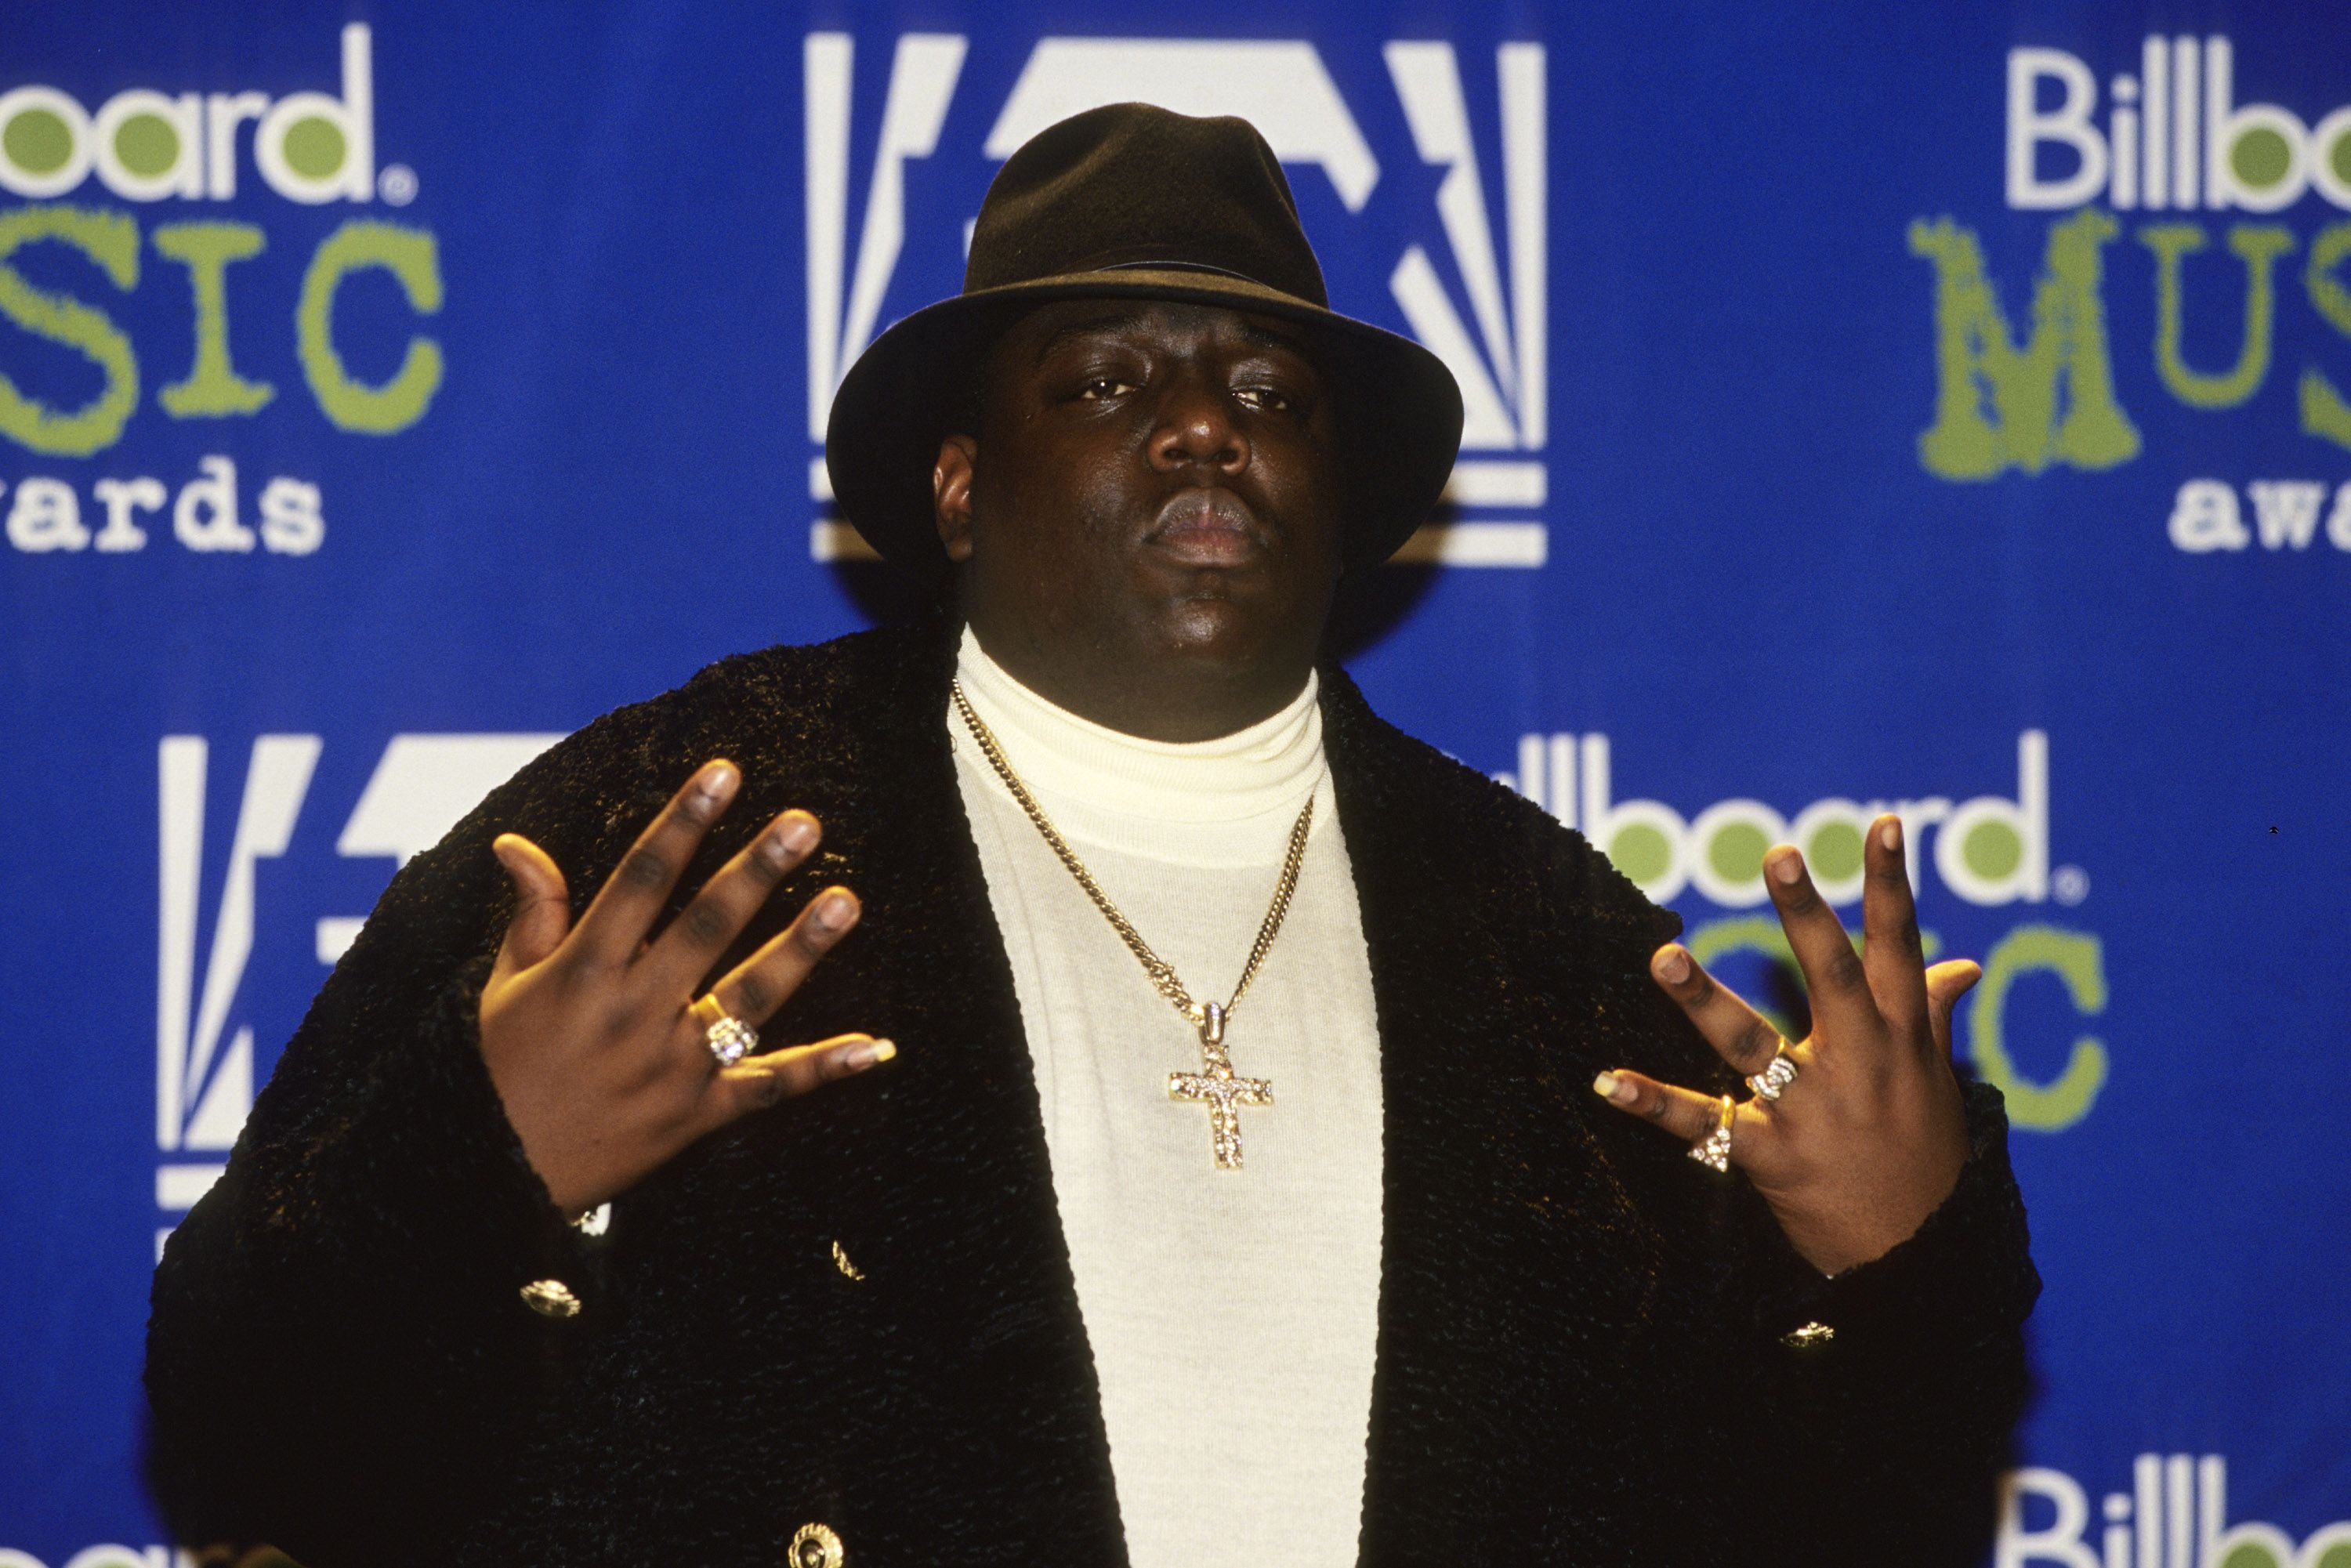 American rapper Notorious B.I.G. (born Christopher Wallace) at the 1995 Billboard Music Awards on December 6, 1996 | Photo: Getty Images